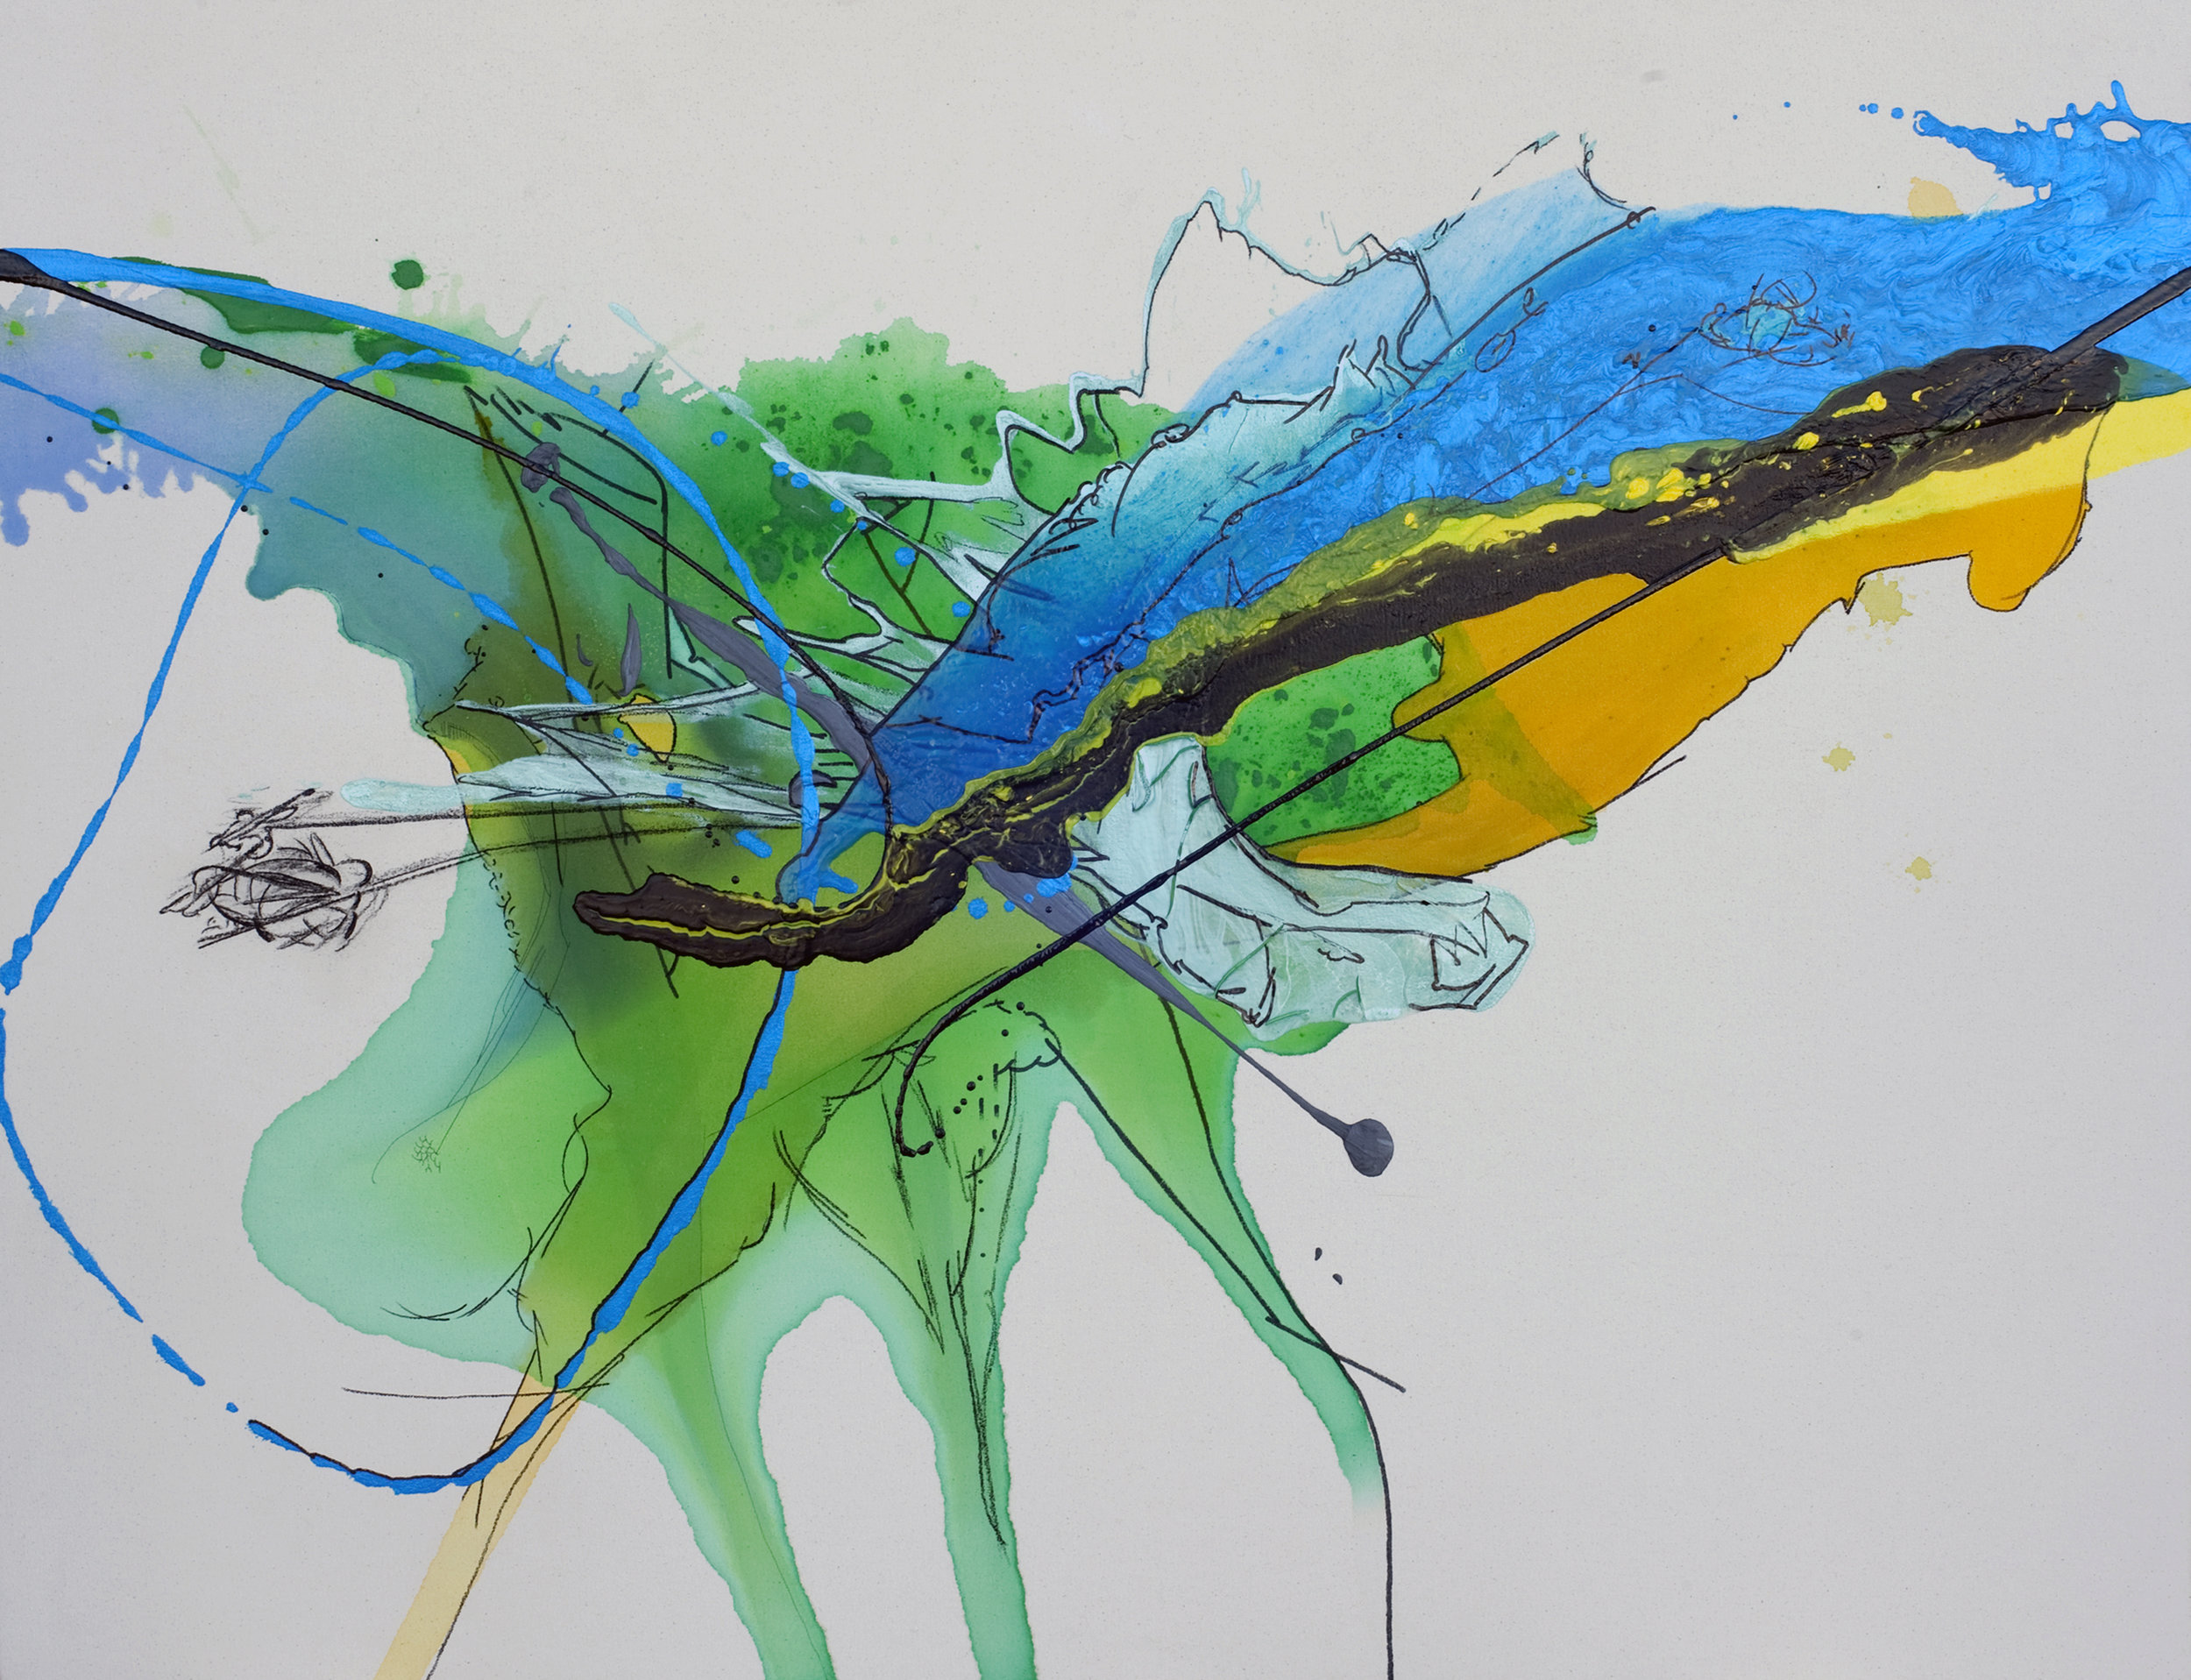 """Falling Fast , 2011 - SOLD   36 x 48 x 3""""  Acrylic, enamel, charcoal and ink on raw canvas"""